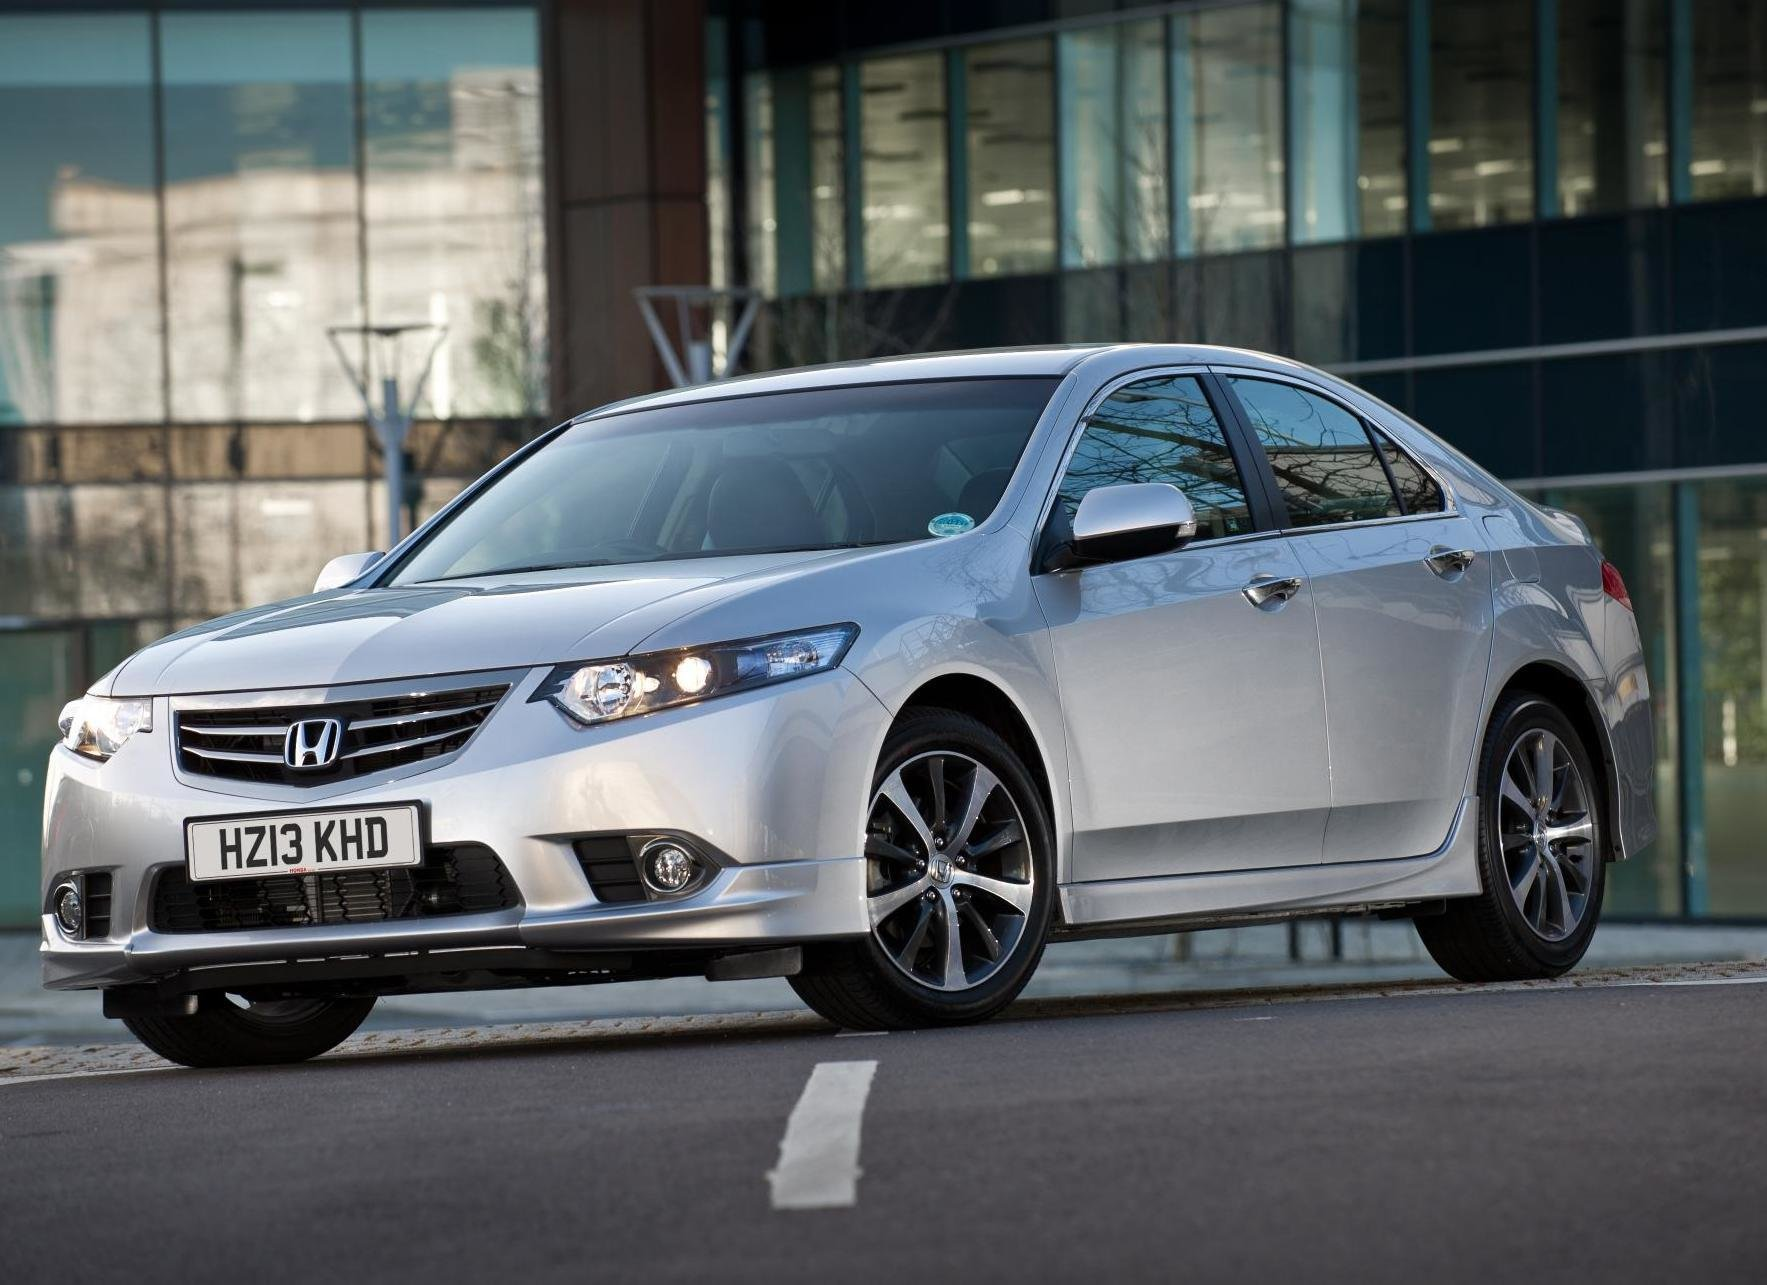 Latest All New Honda Accord India Launch In 2015 India Car News Free Download